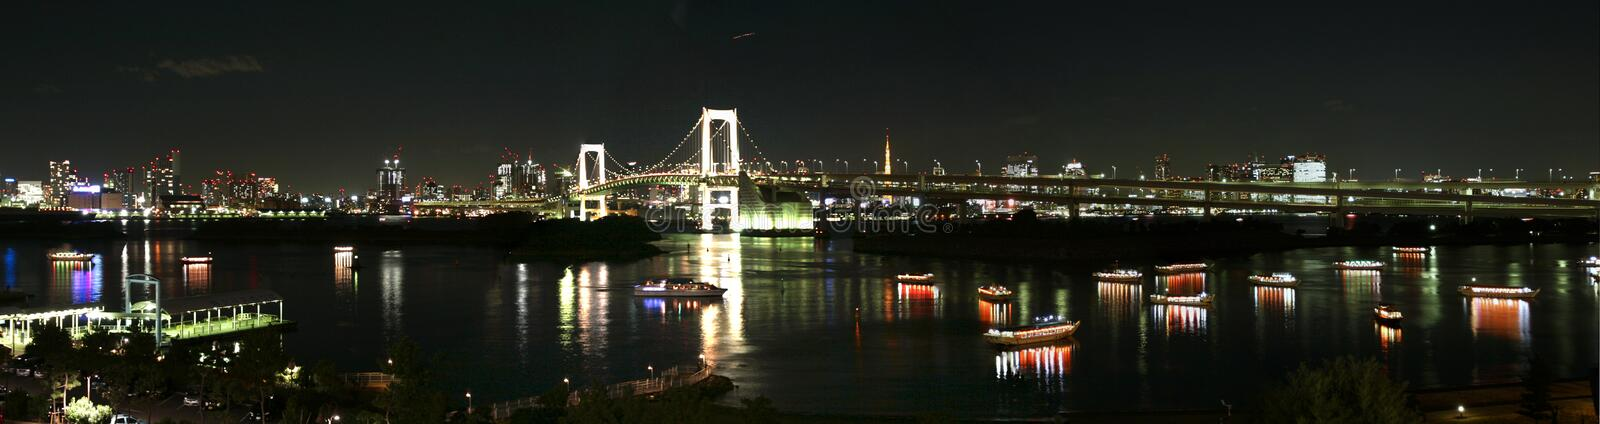 Tokyo city at night. Toky city in Odaiba and the rainbow bridge and tokyo tower in background